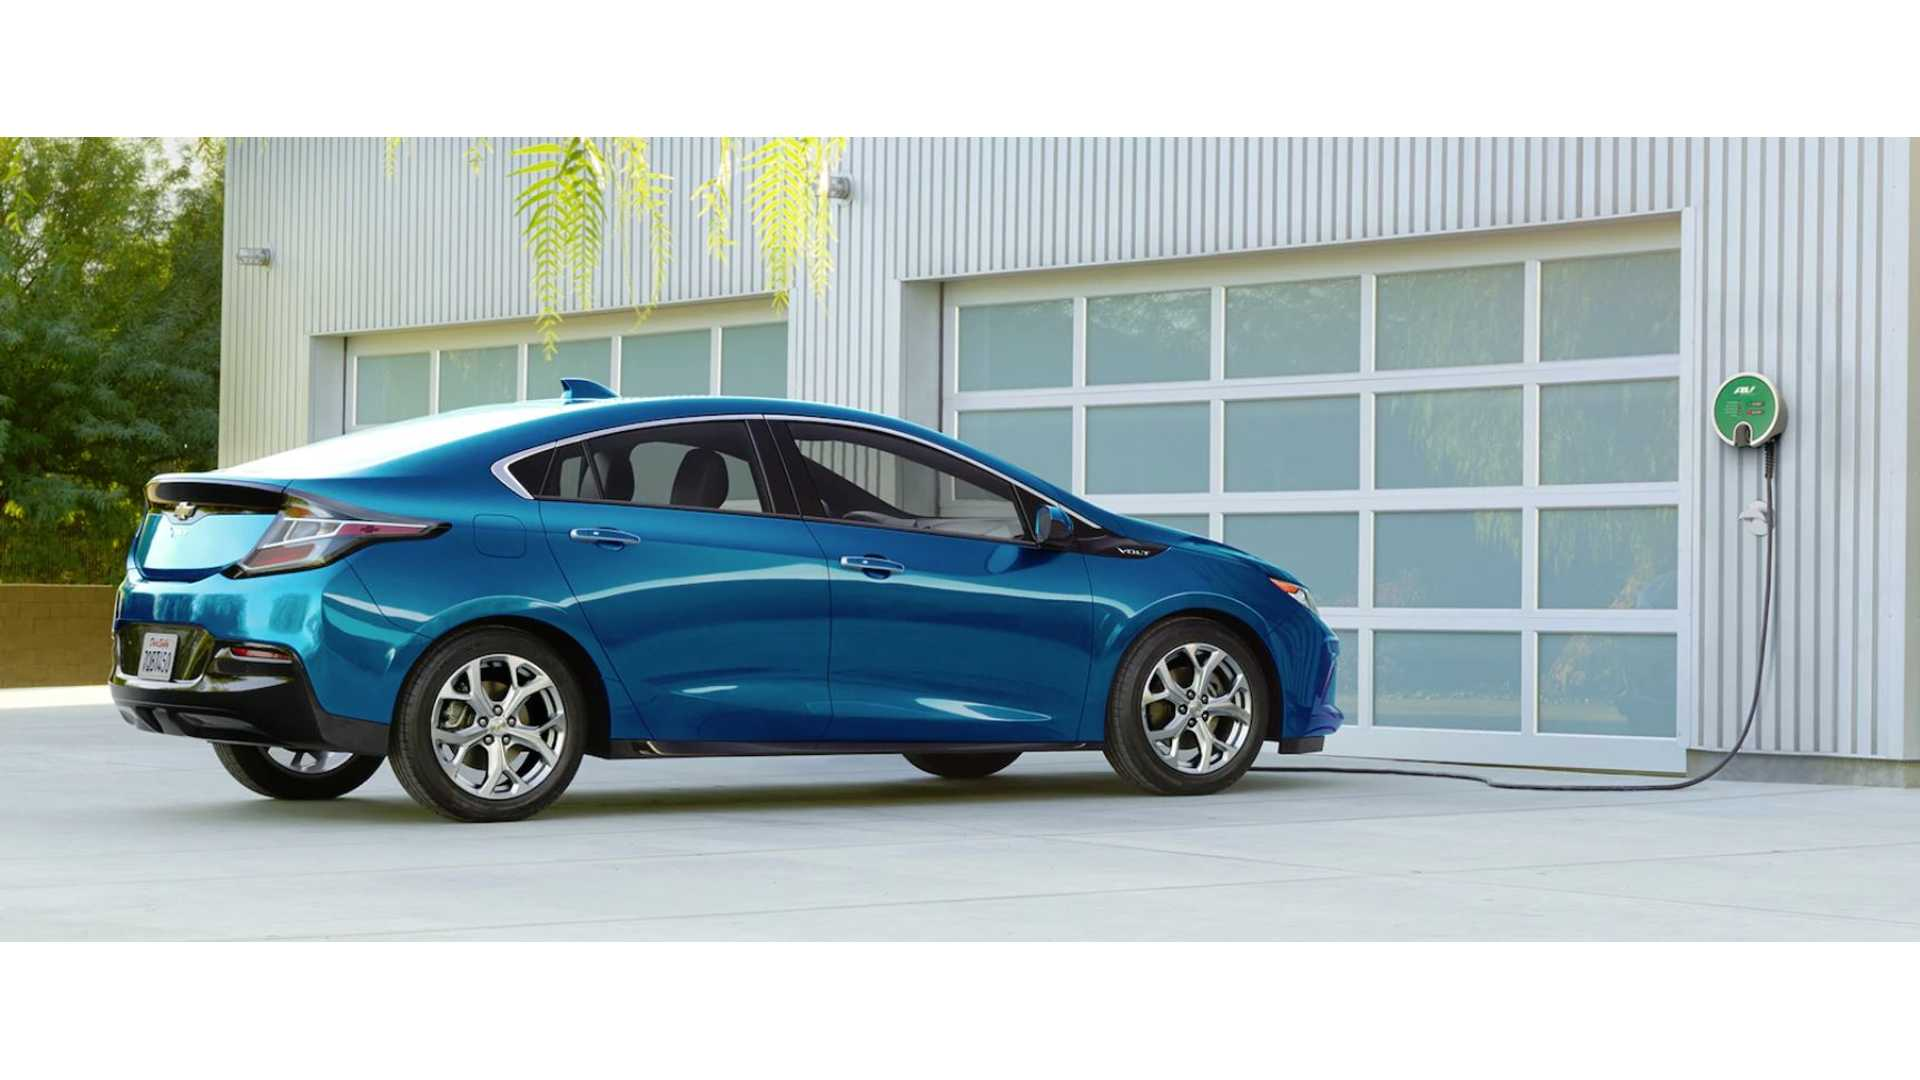 43 New 2019 Chevrolet Volt Pictures by 2019 Chevrolet Volt